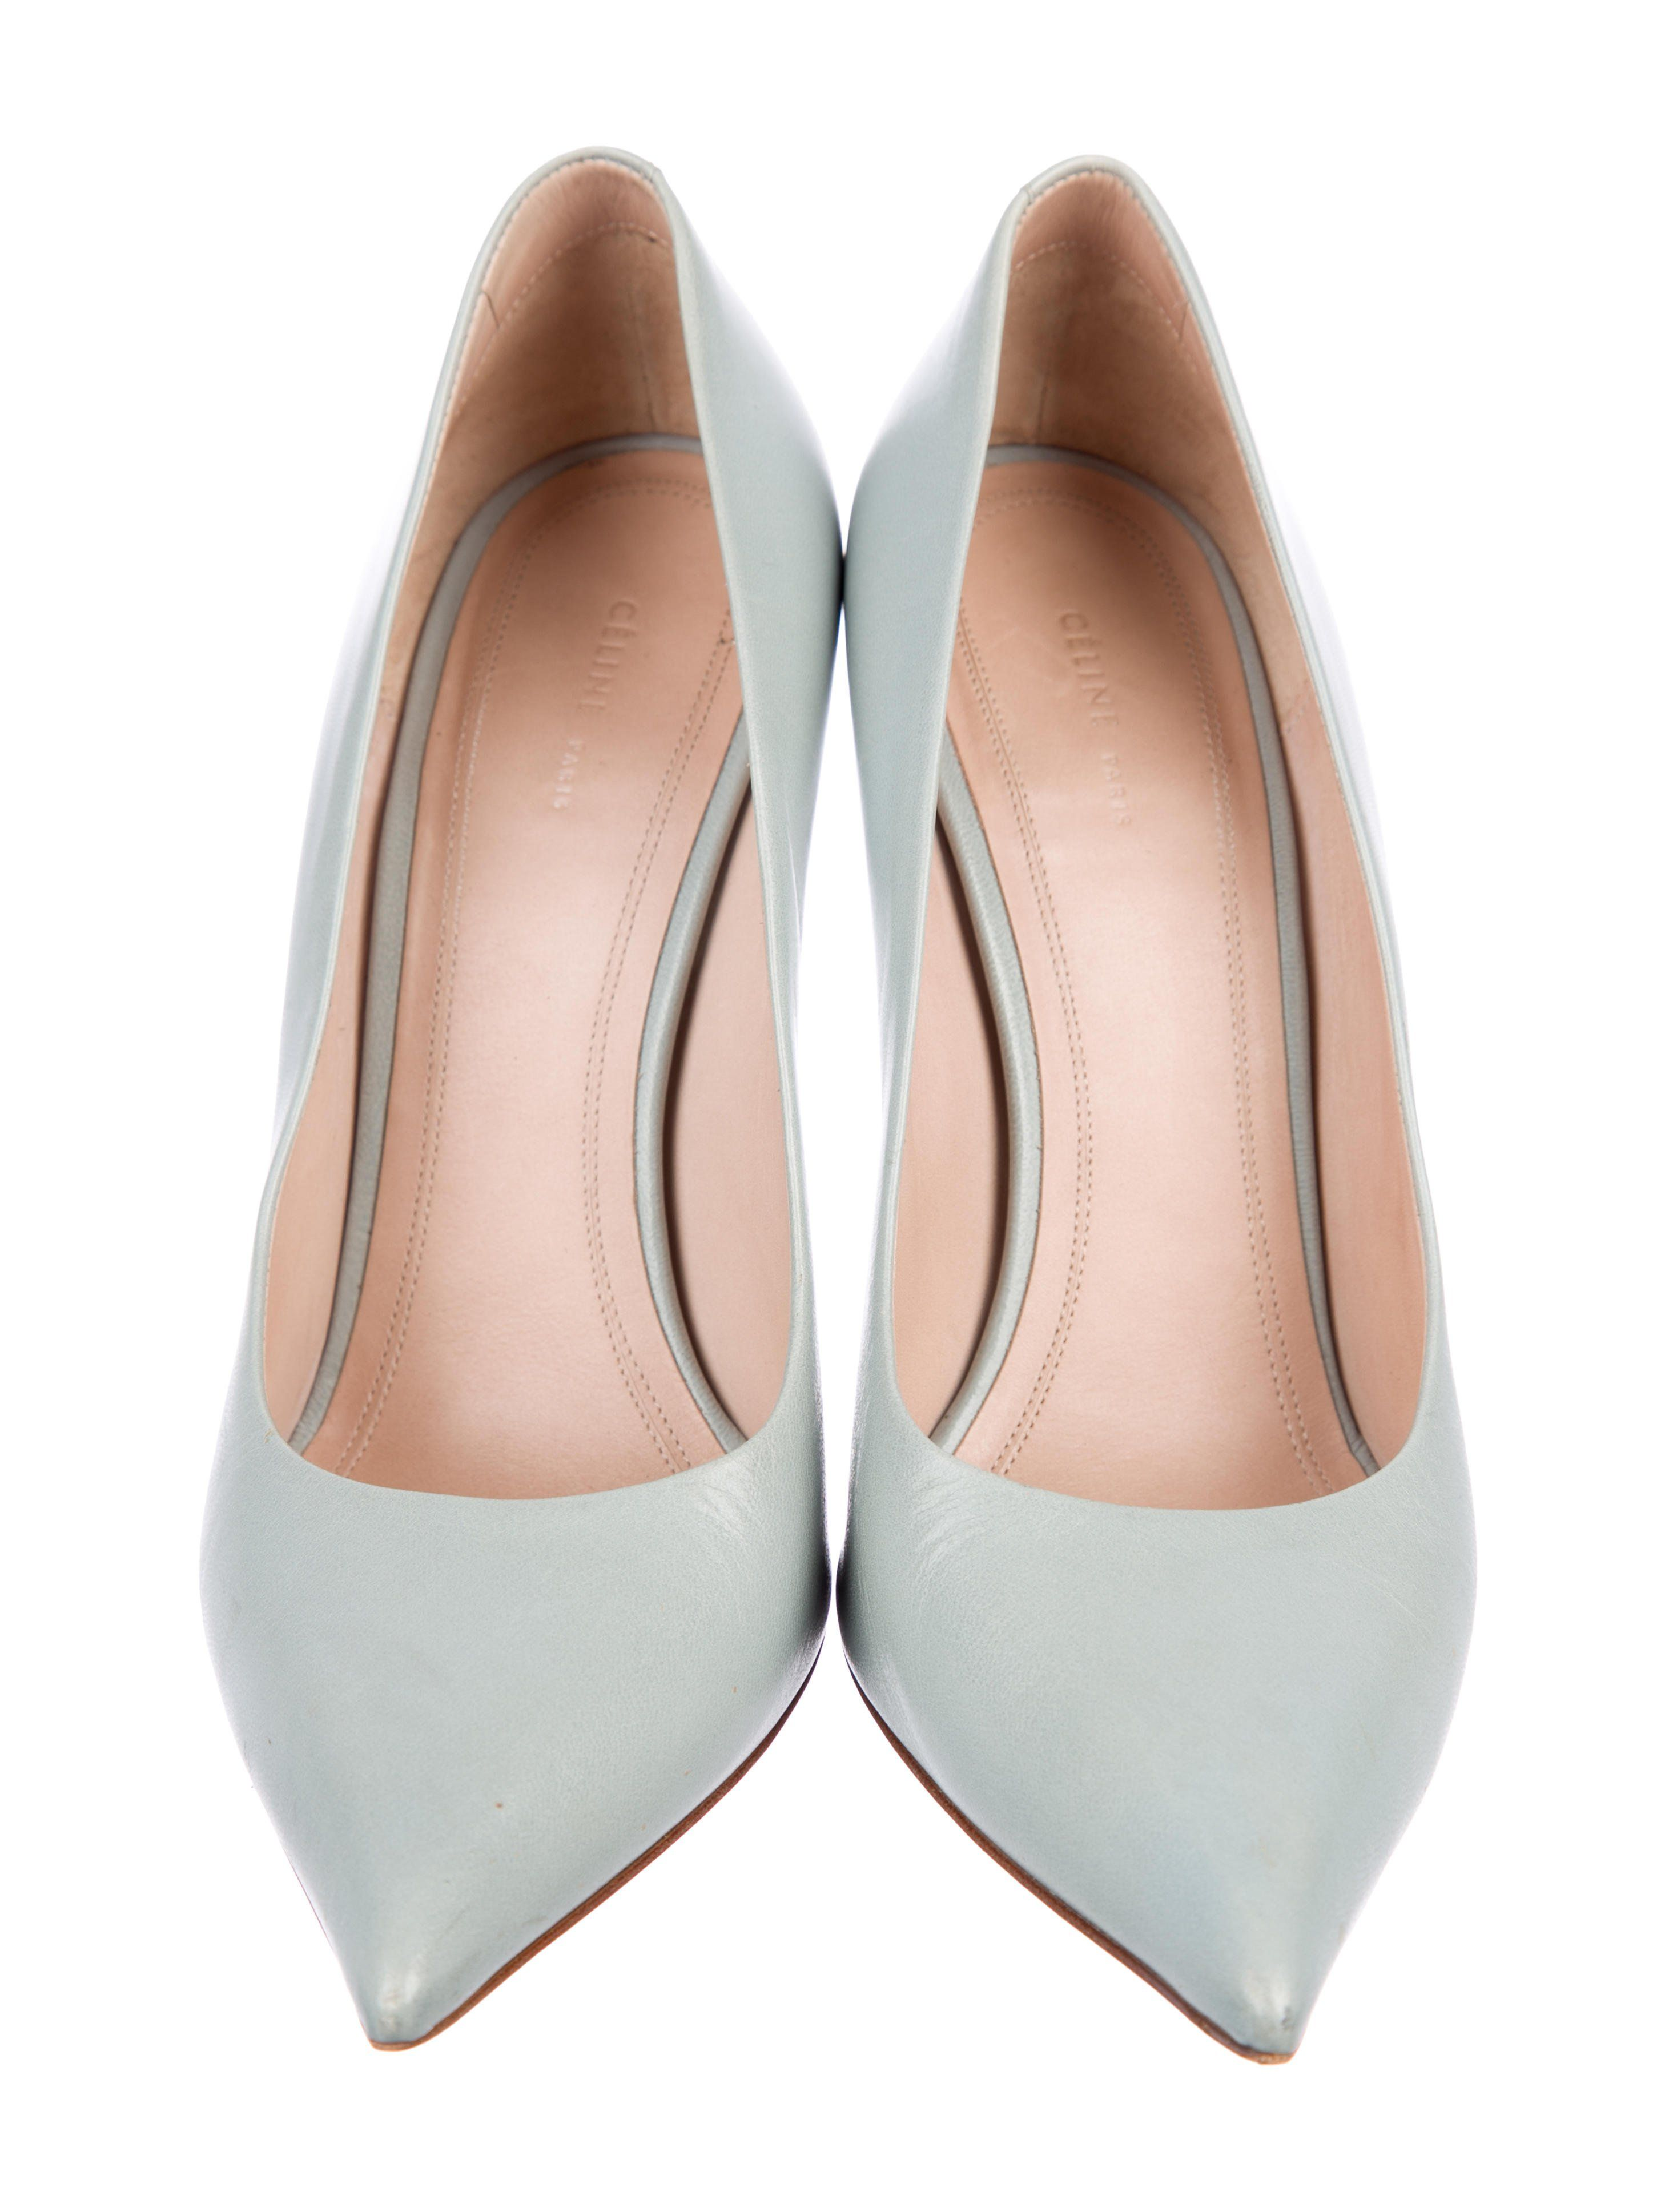 b971afa1739c Seafoam leather Céline pointed-toe pumps with tonal stitching and covered  heels.